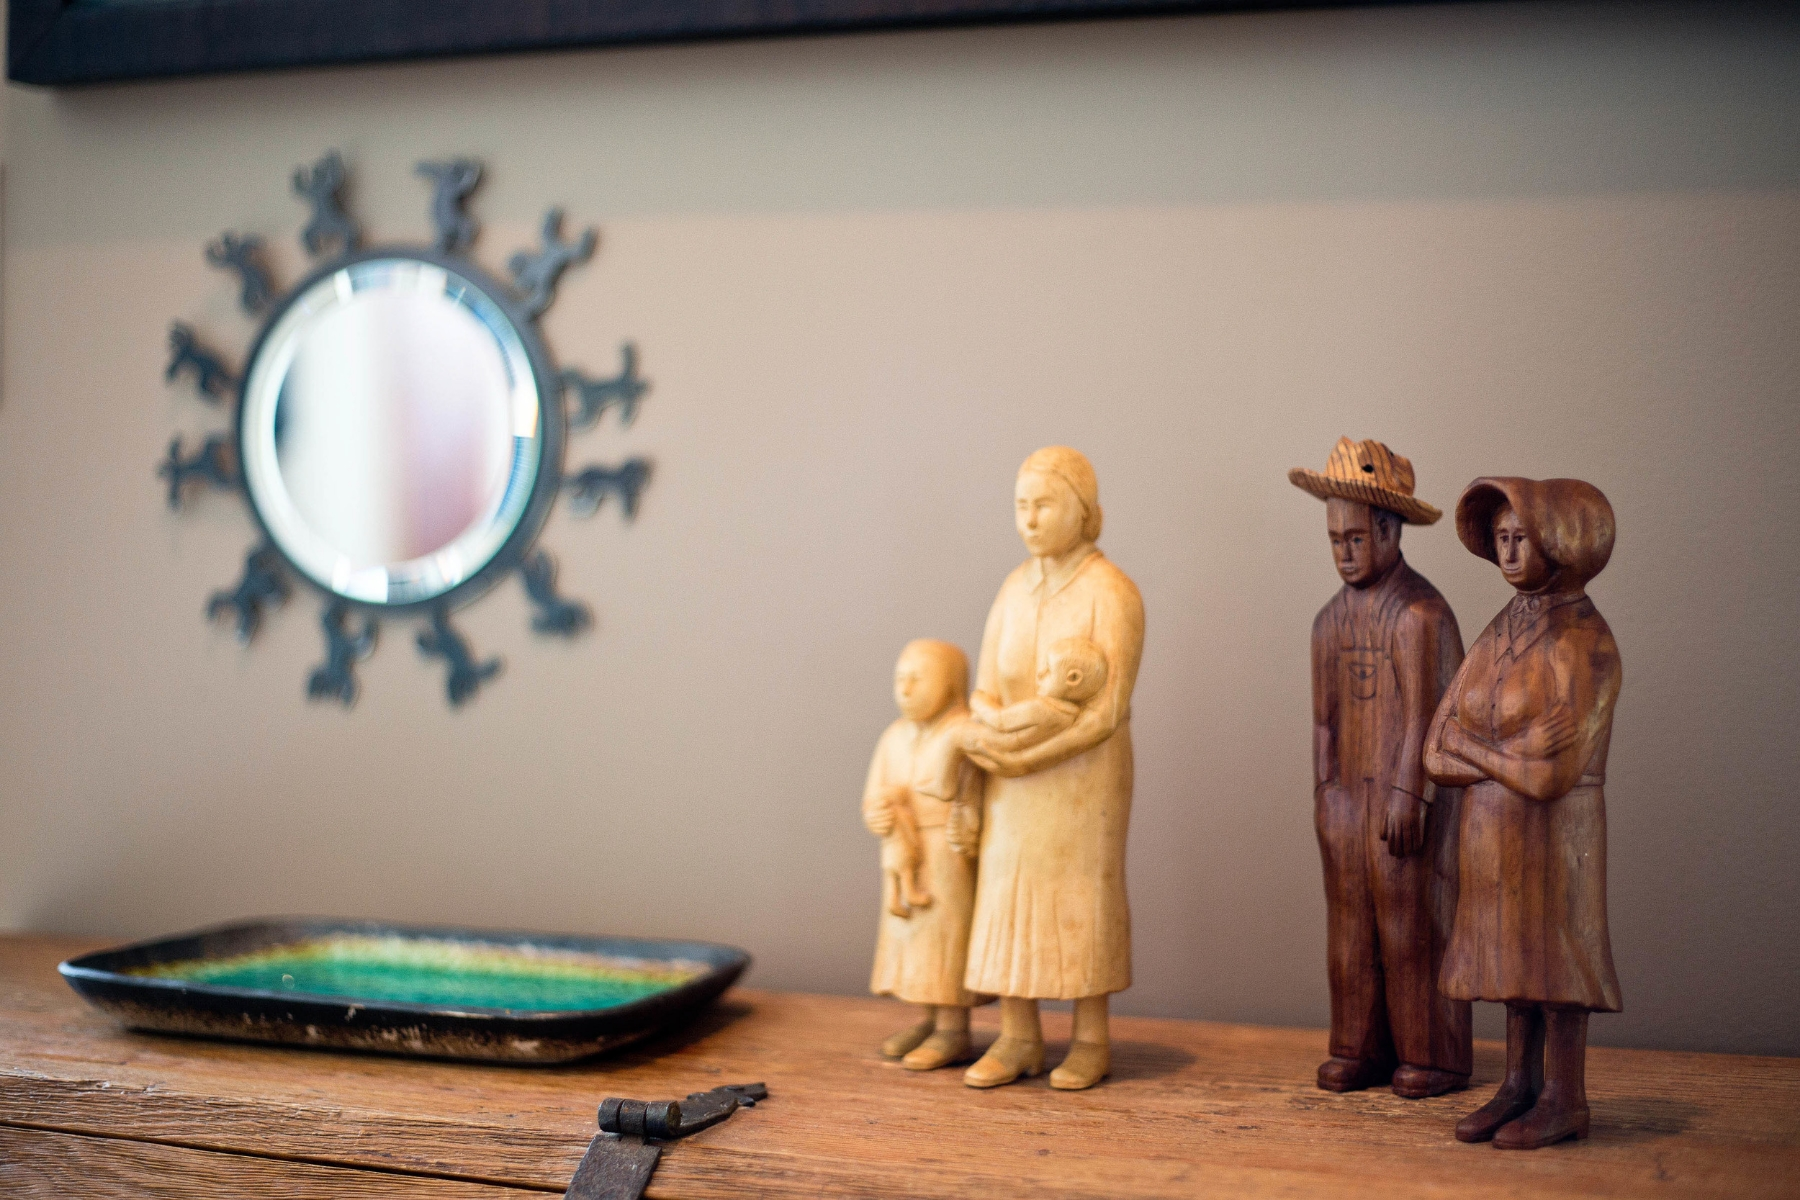 Display of global collection of artifacts by academic and collector. Photo: Matthew Lofton